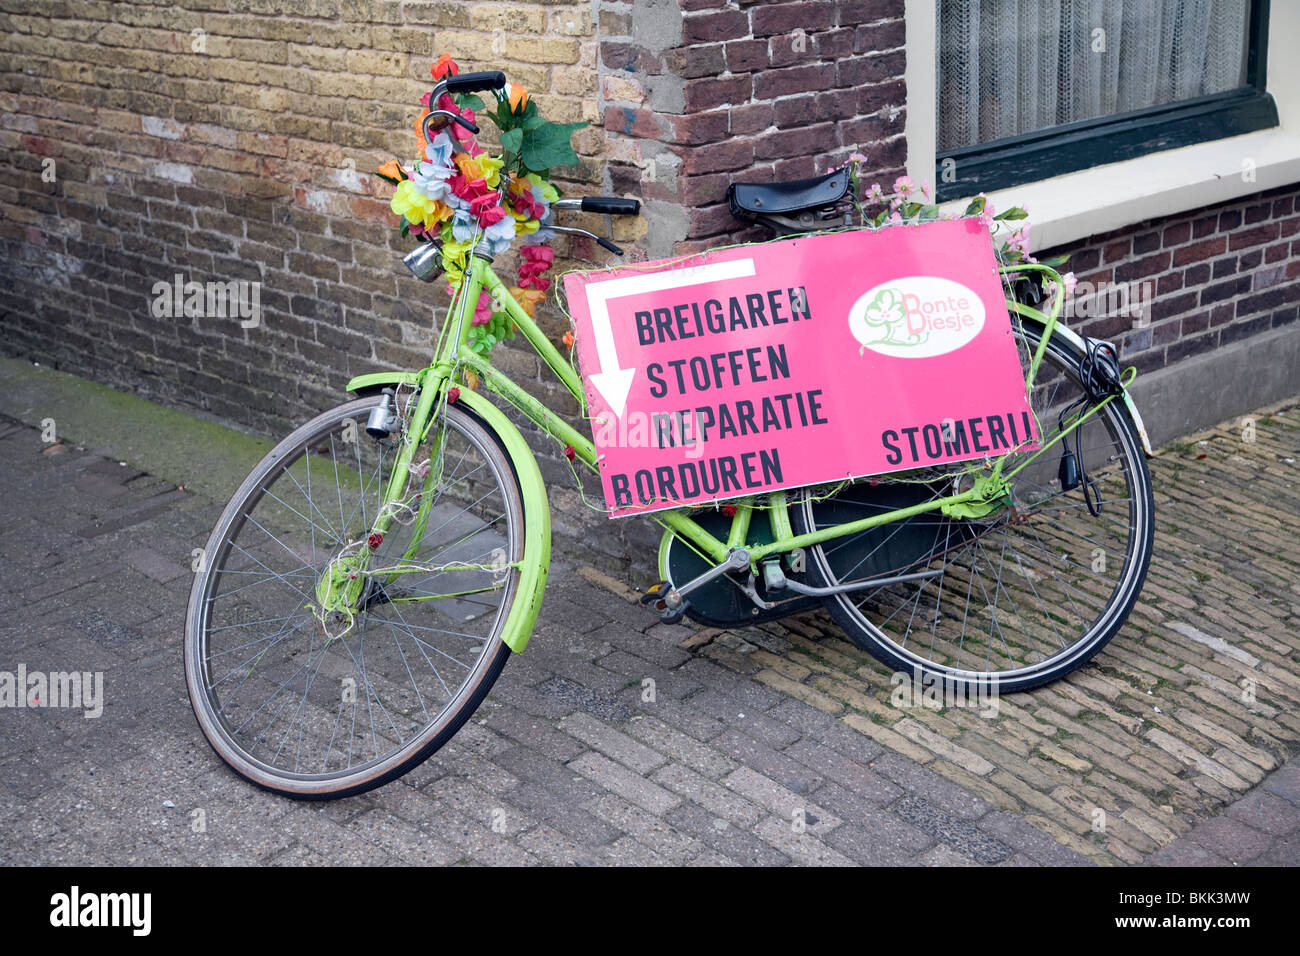 Colourful bicycle used to advertise, Texel, Netherlands, - Stock Image